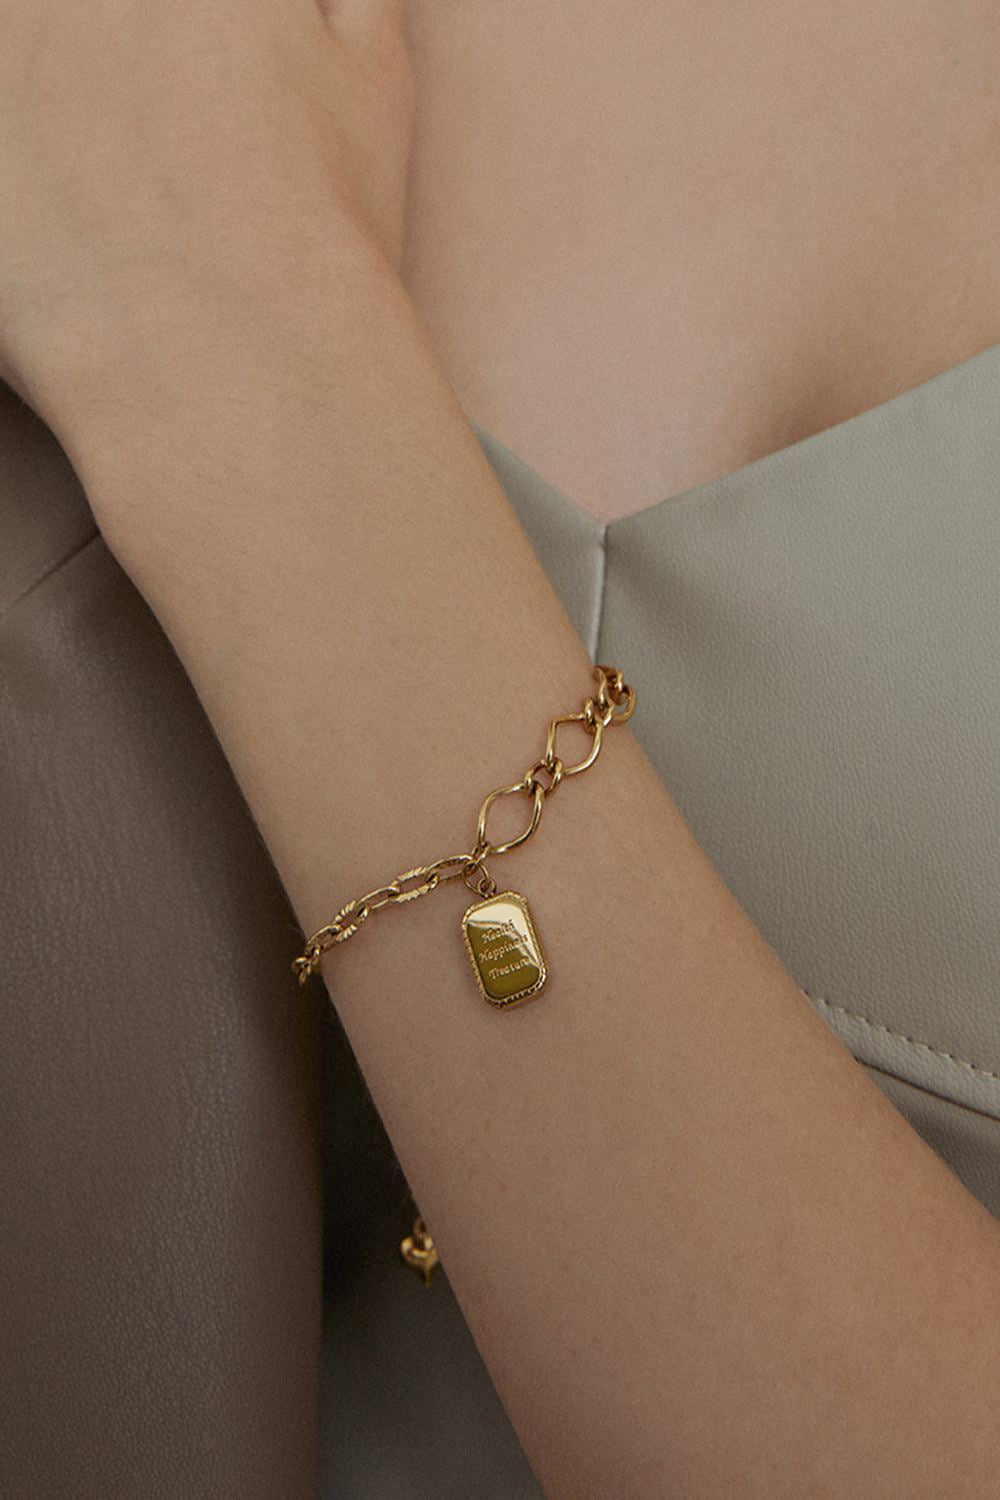 Paperclip Punk Chain Bracelet Fall Jewelry Trends